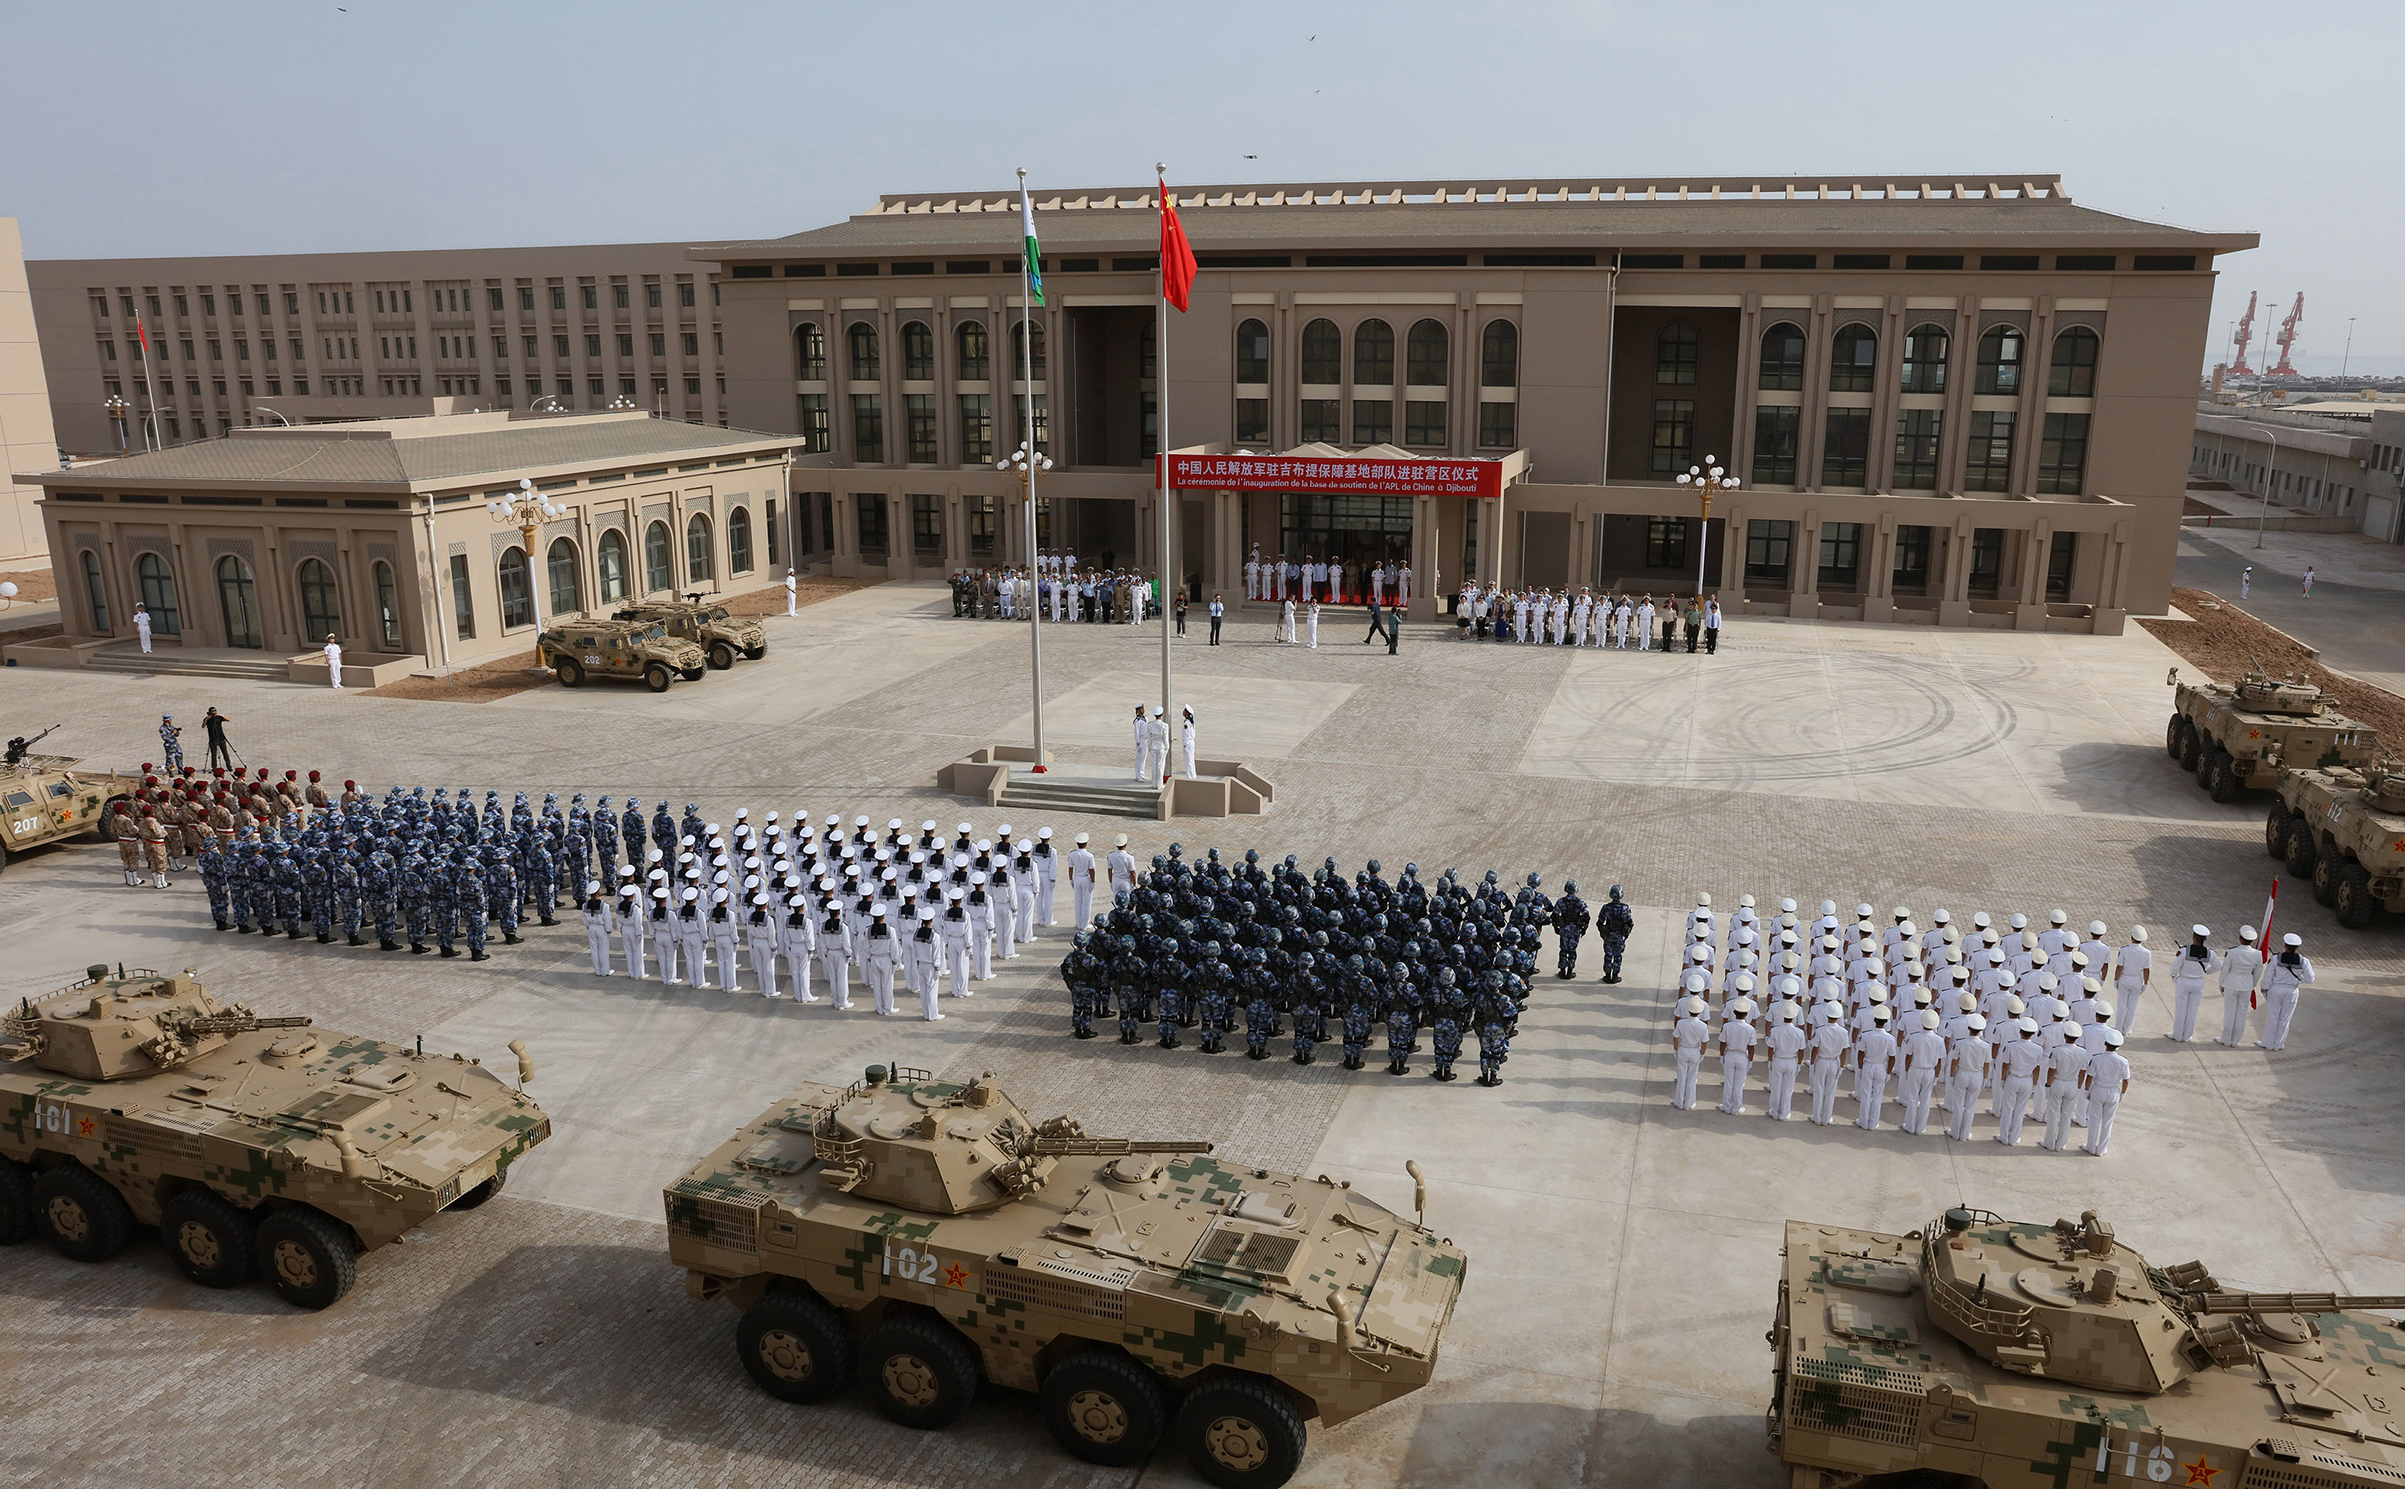 The opening ceremony of China's new military base, its first overseas, in Djibouti on Aug. 1, 2017.